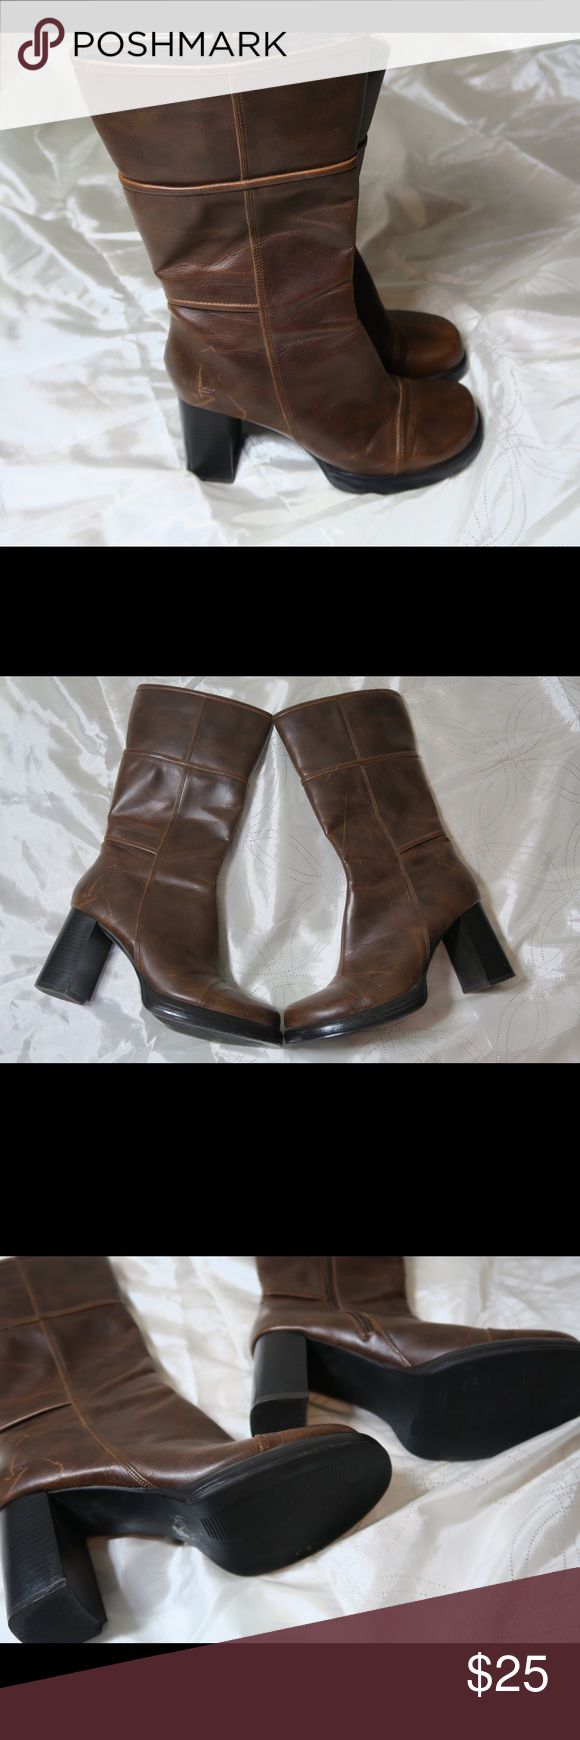 Sketcher Boots Great design and very comfortable. Brown heeled boots. Good Condition Skechers Shoes Heeled Boots